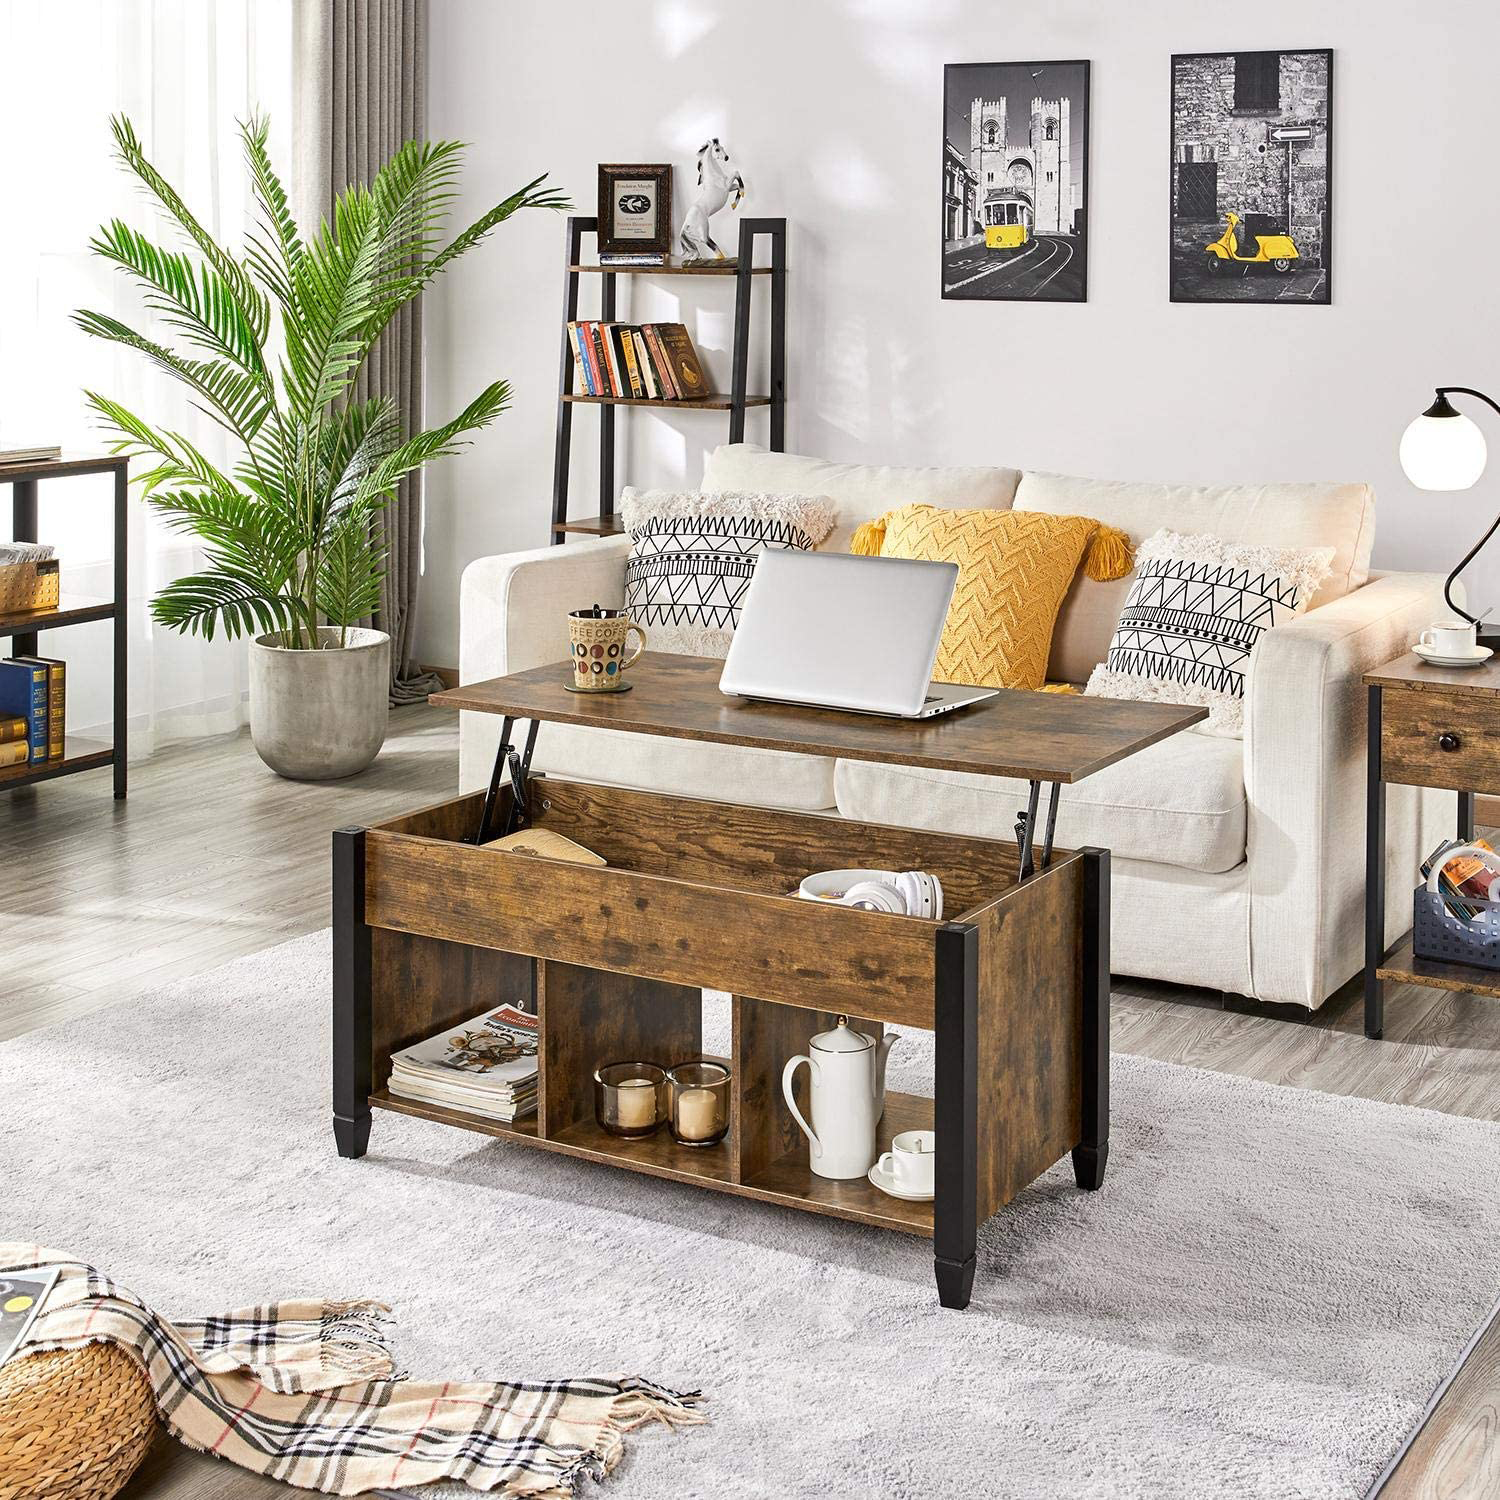 YAHEETECH Lift Top Coffee Table with Hidden Compartment & Shelf